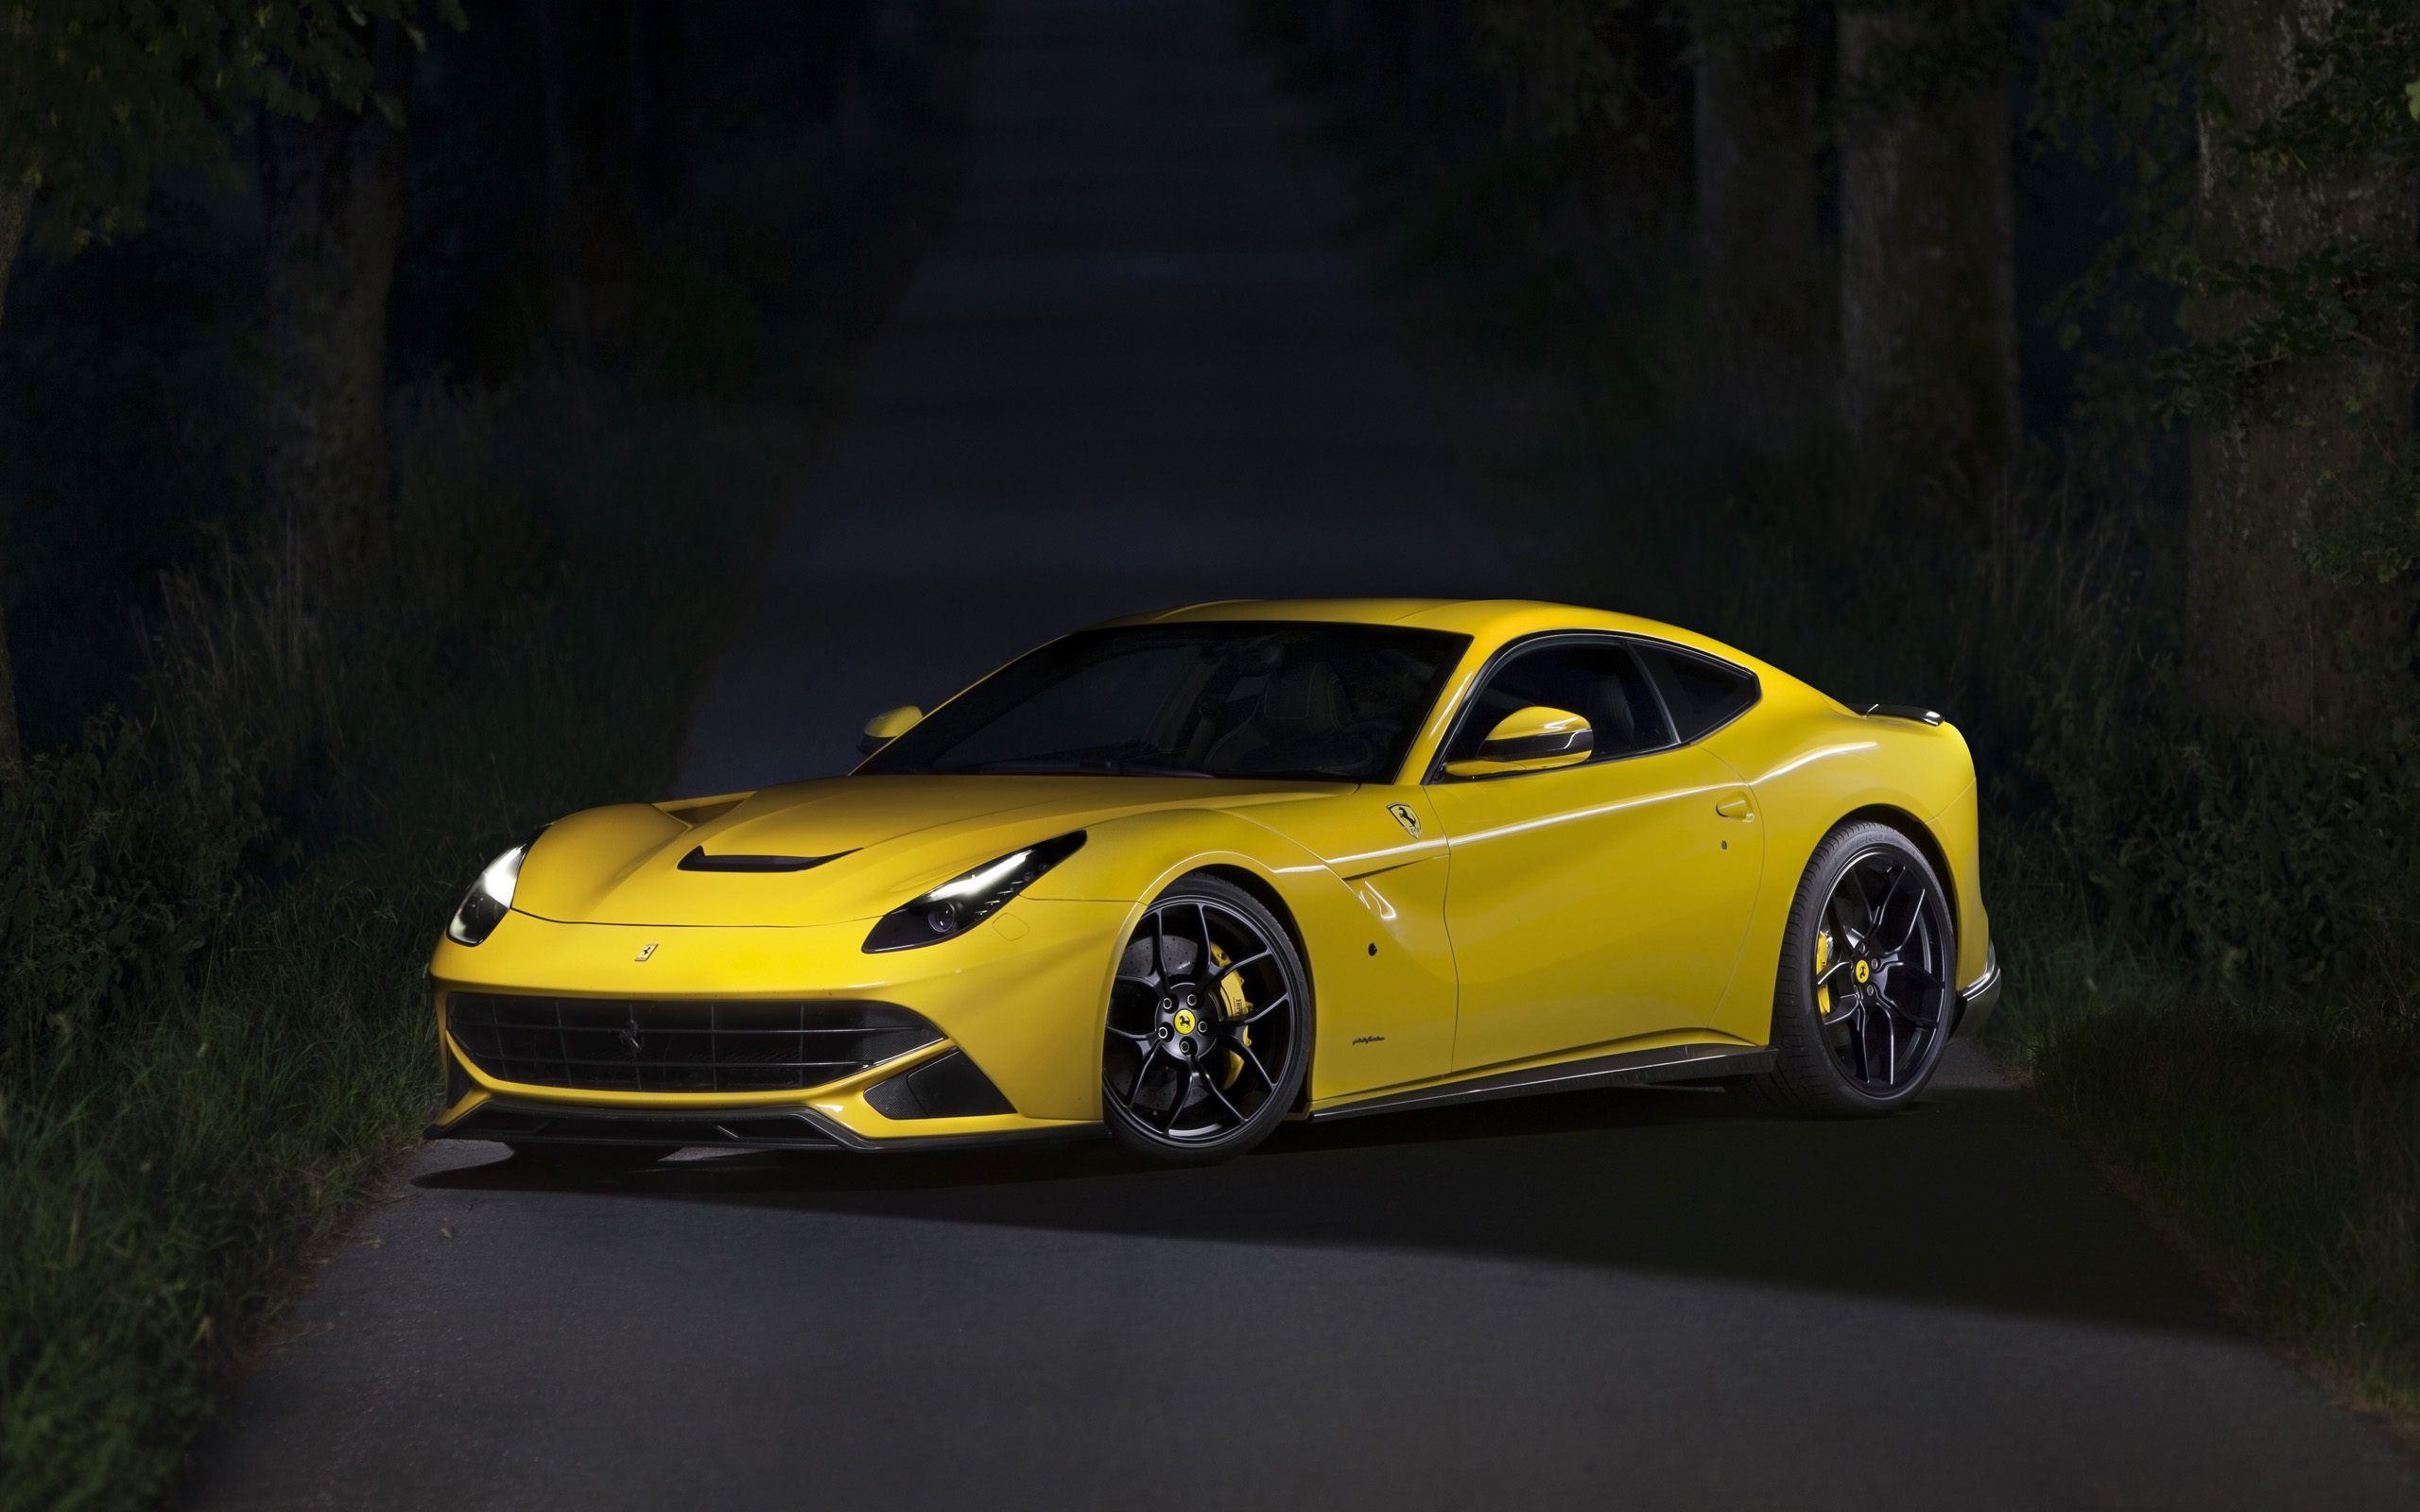 Apple Iphone X Wallpaper Novitec Rosso Ferrari F12berlinetta Wallpaper Hd Car